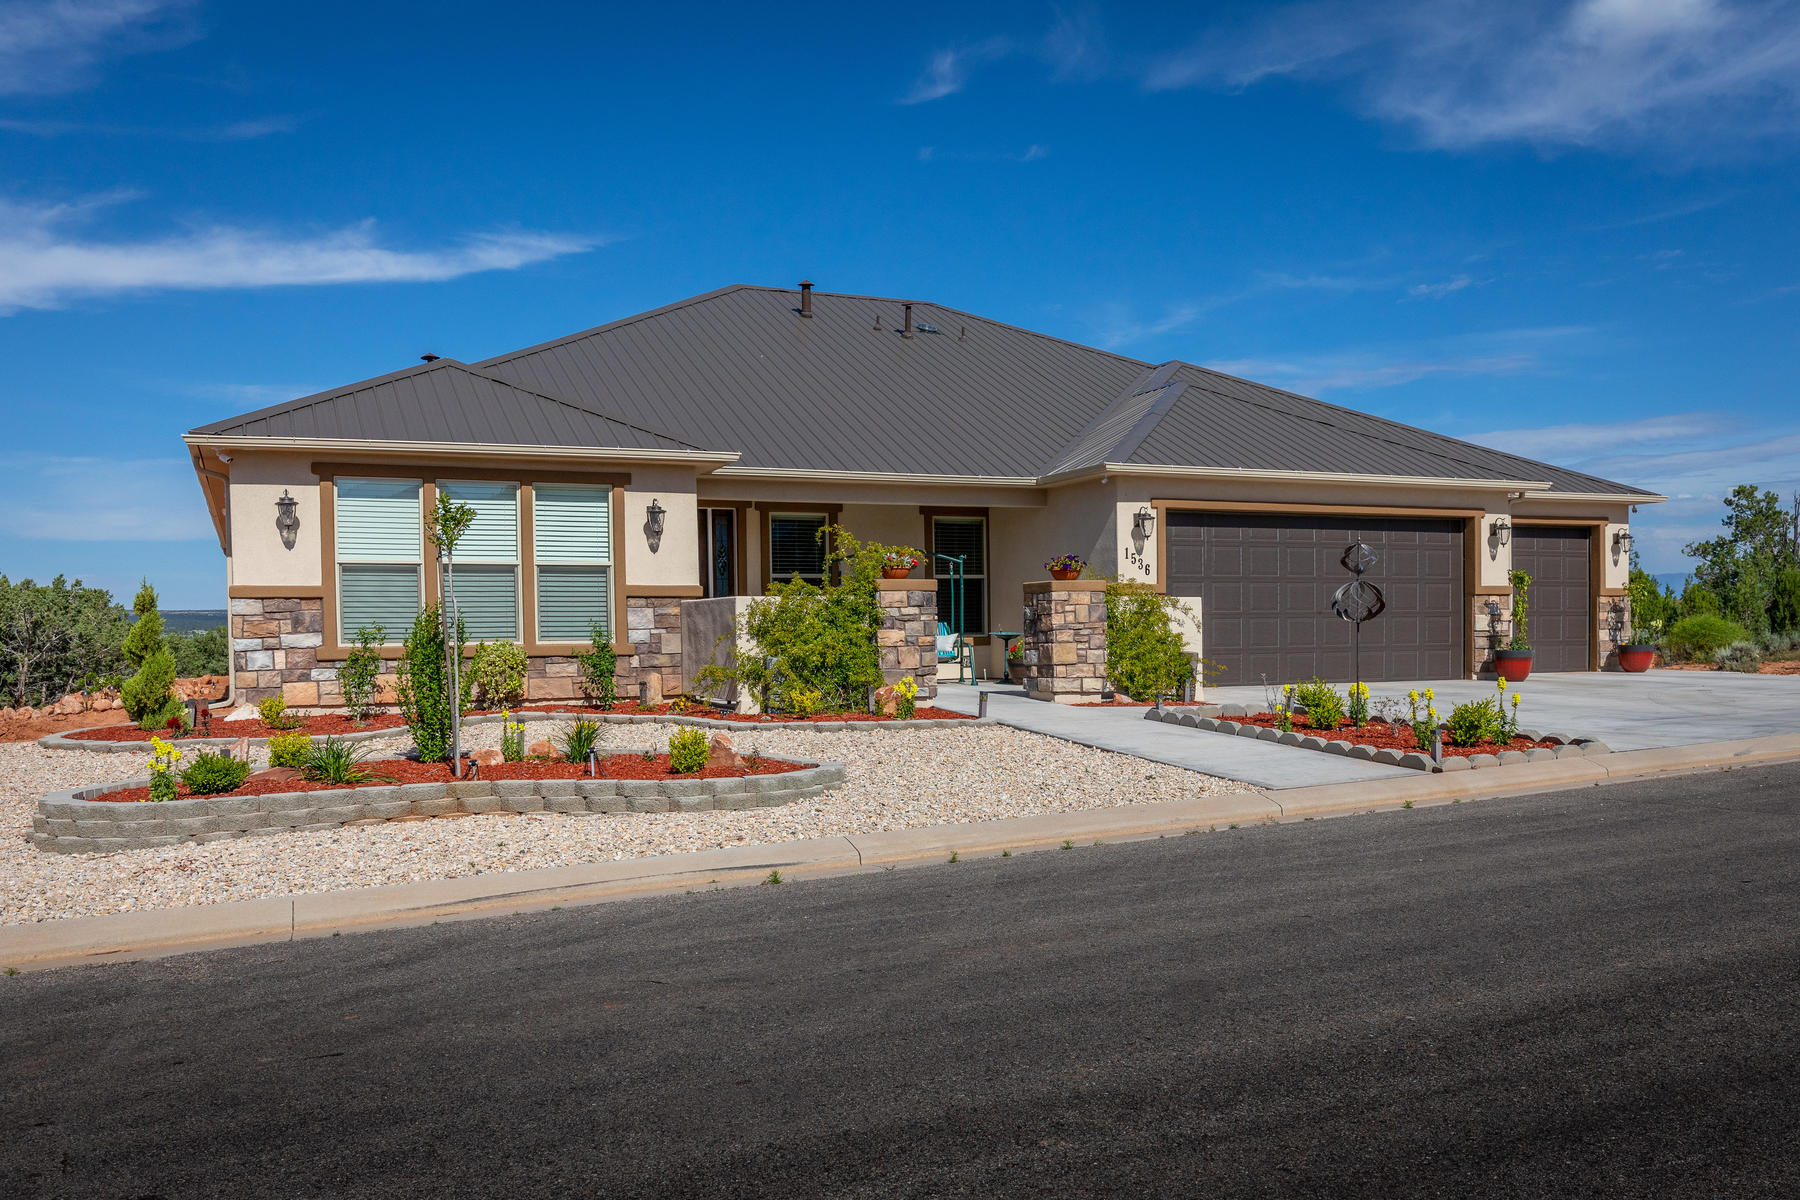 Single Family Homes for Active at Capture The views And Experience The Great Outdoors 1536 S Cliff Drive Apple Valley, Utah 84737 United States